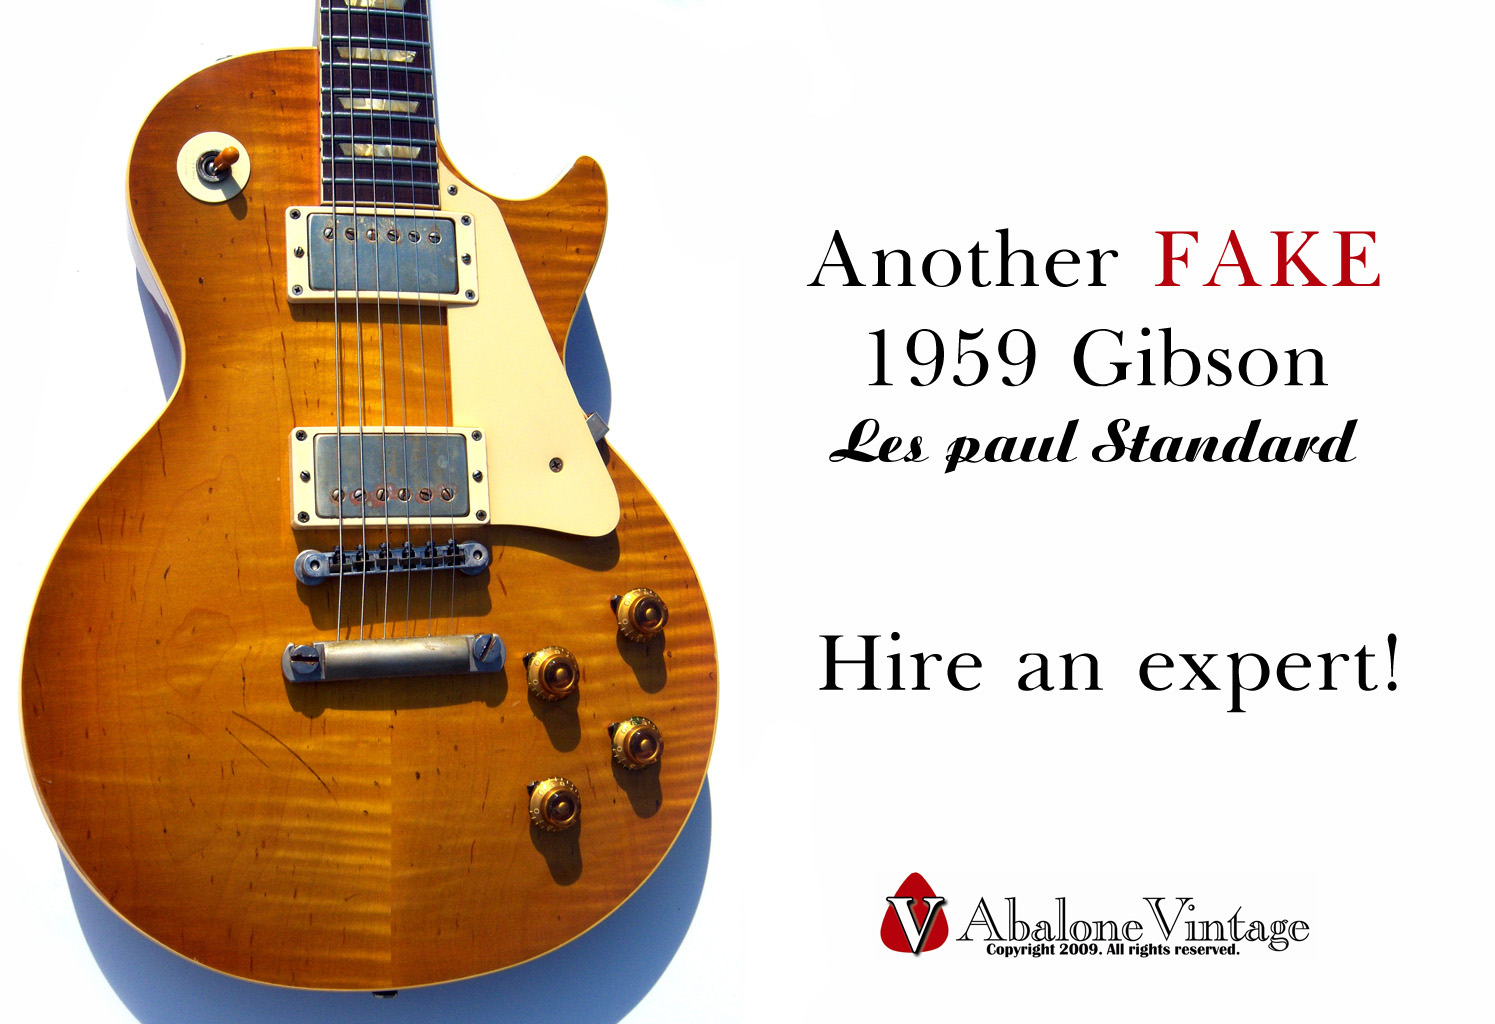 photos of fake 1959 gibson les paul guitars forgery replicas. Black Bedroom Furniture Sets. Home Design Ideas